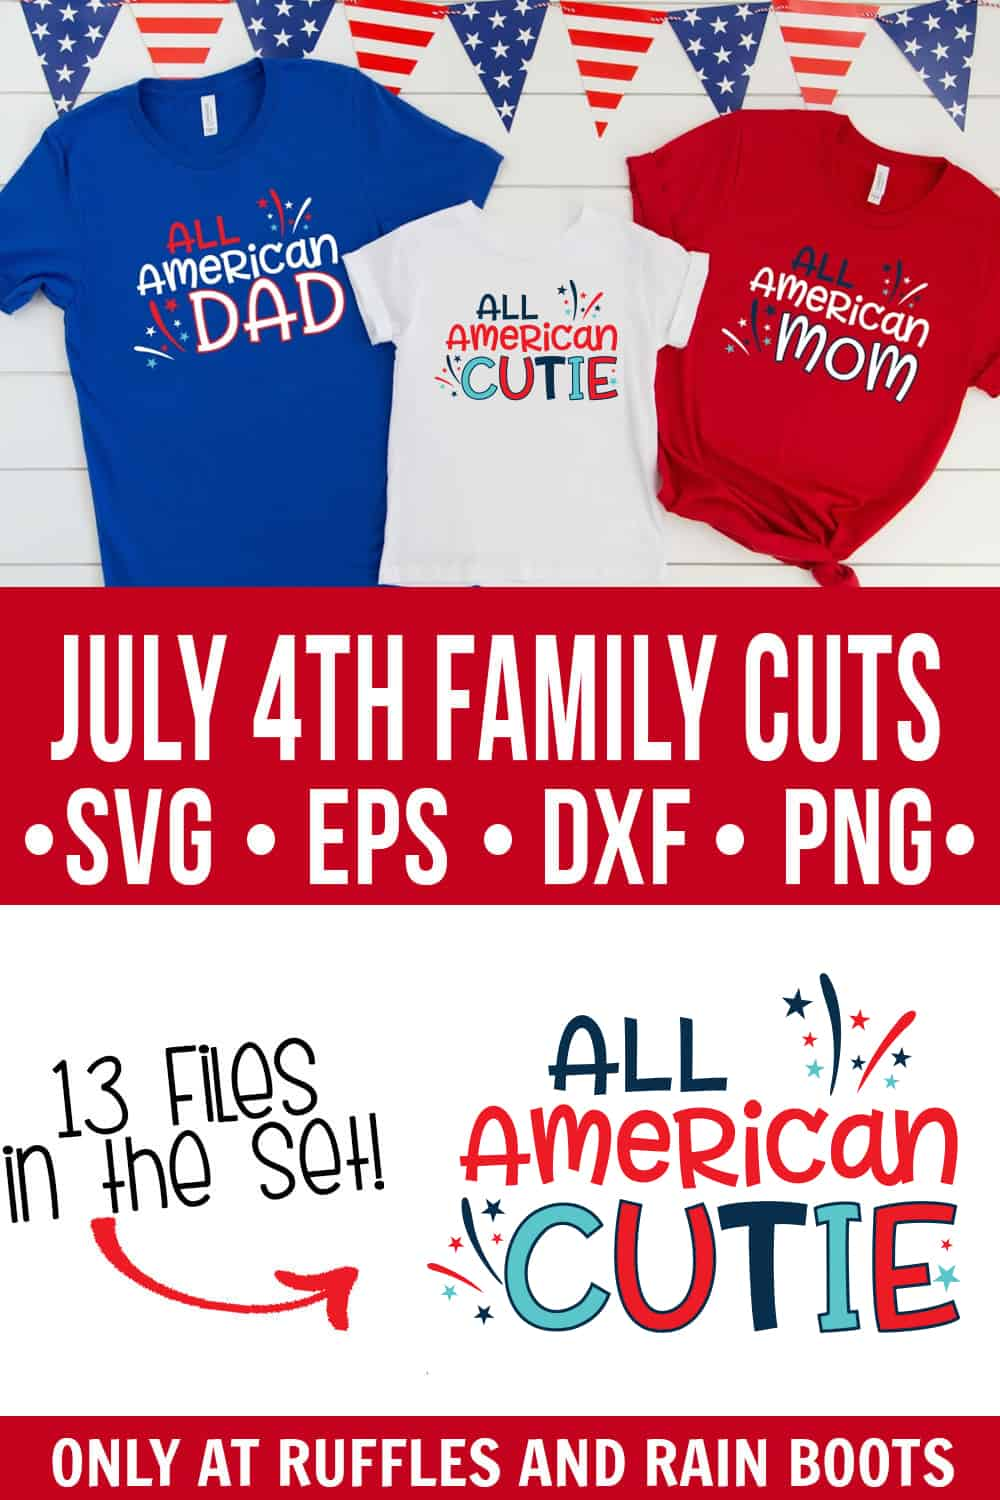 photo collage of All American SVG files for 4th of July with three red white and blue t shirts for clipart